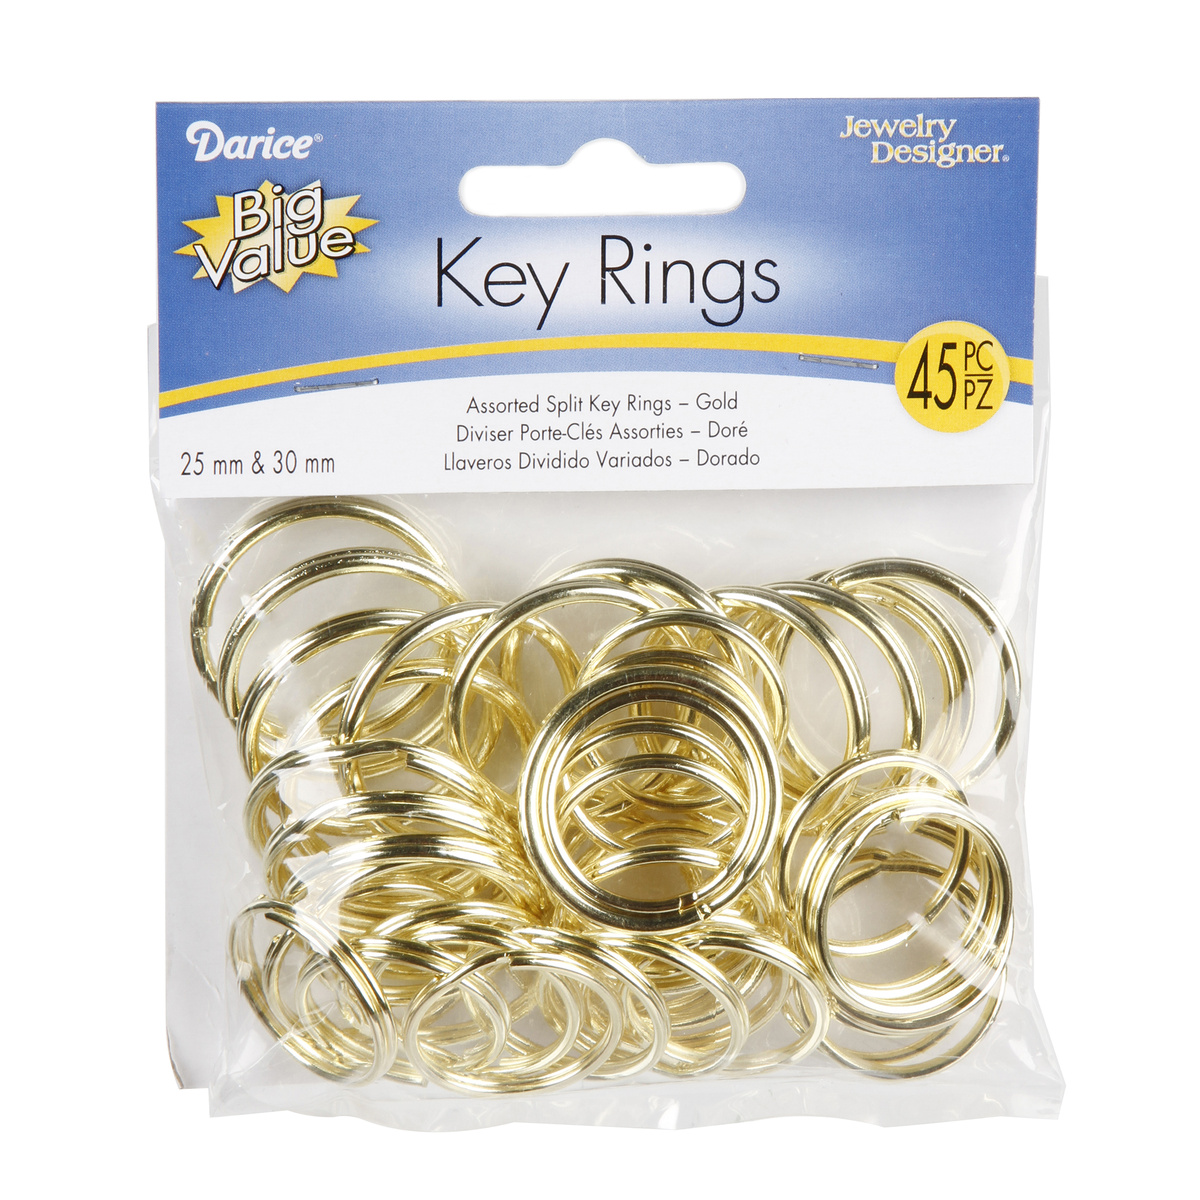 Brass Plated Key Ring Assortment, 25mm & 30mm